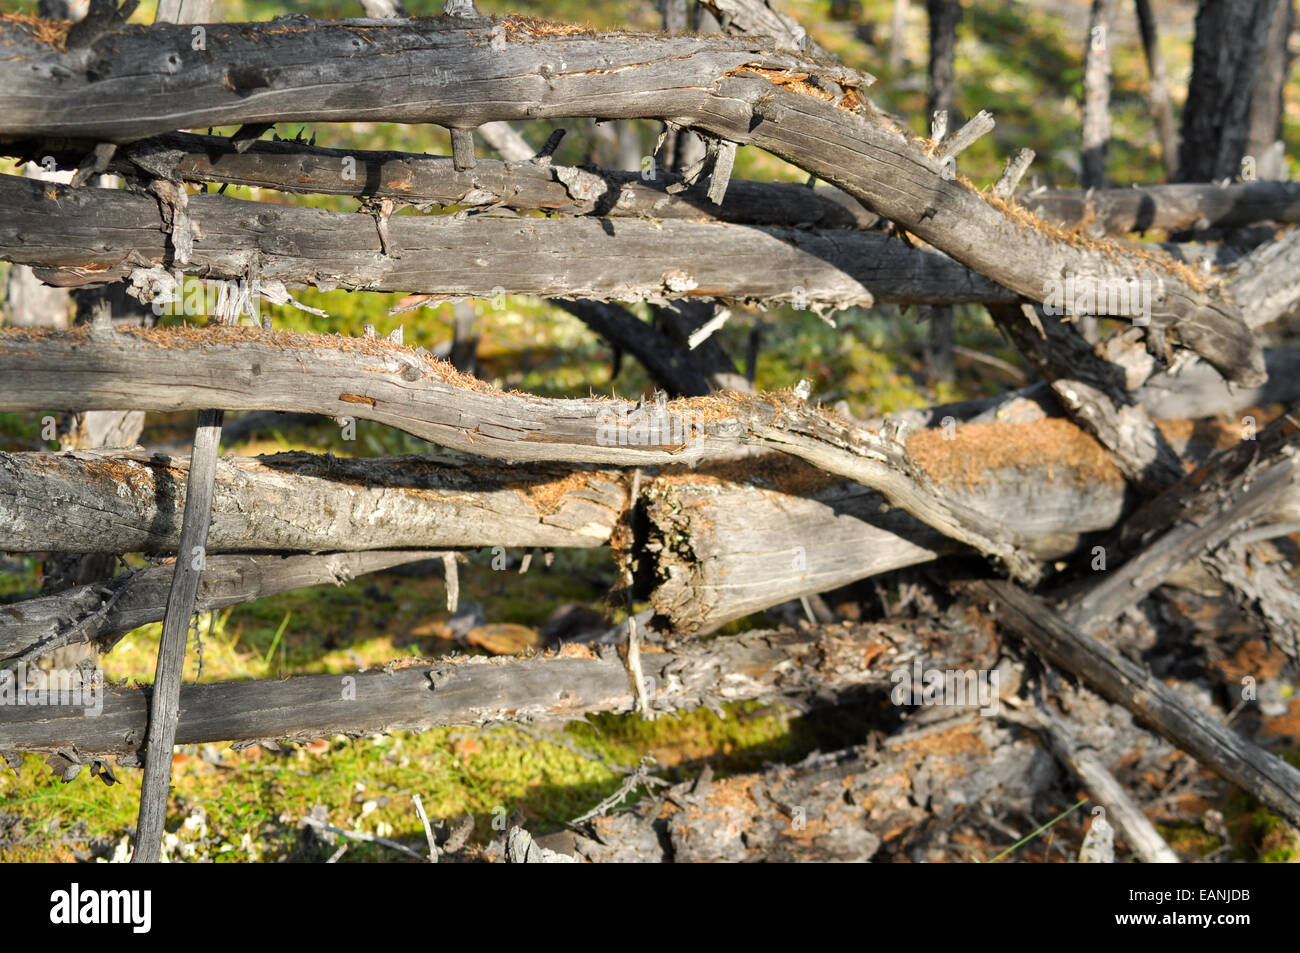 In a distant Yakut taiga on the edge of the earth. The old fence covered with moss. - Stock Image